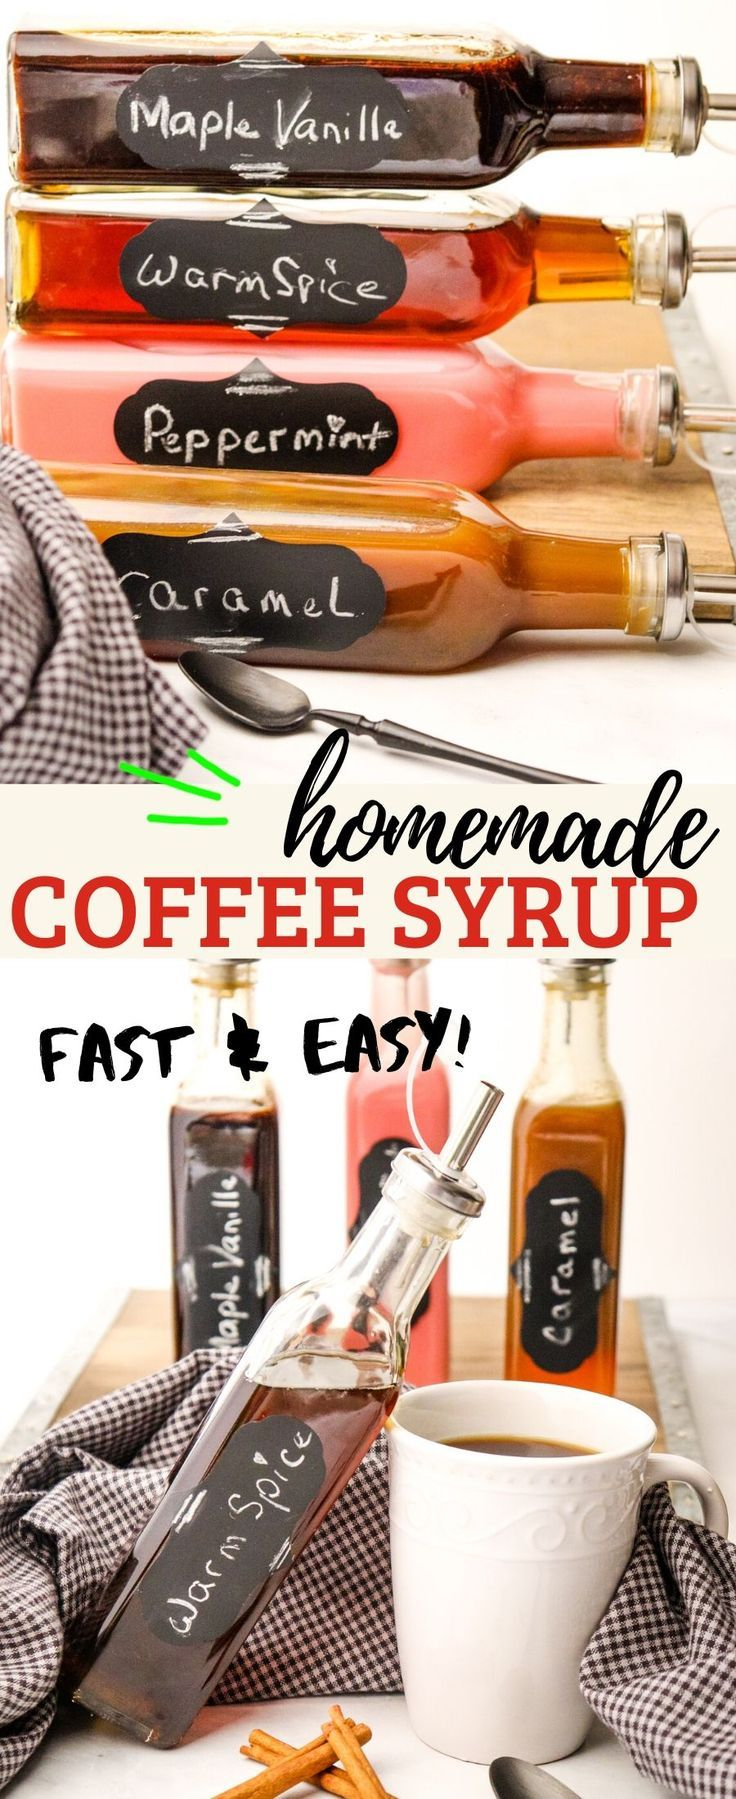 Four recipes for homemade coffee syrup that you can make